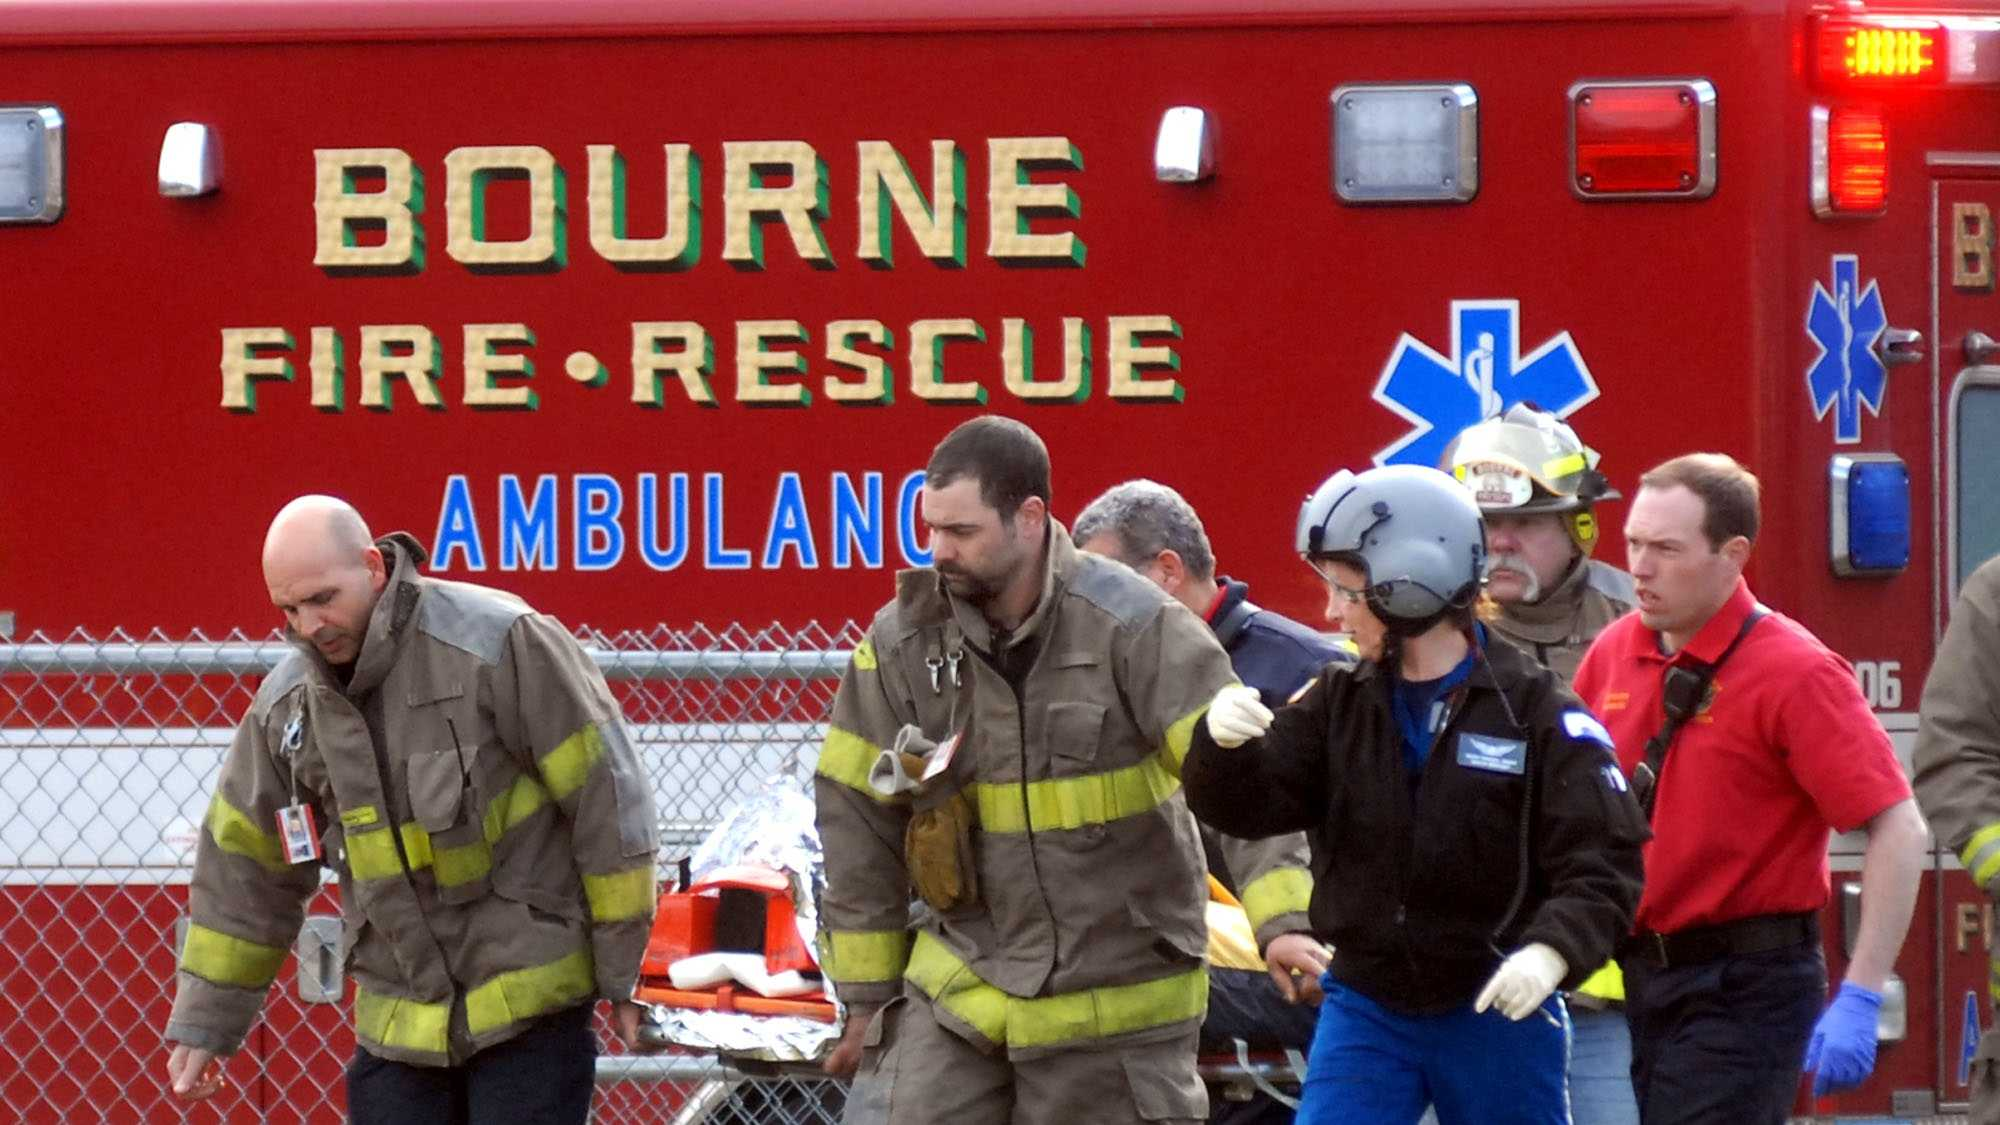 Bourne Industrial Accident